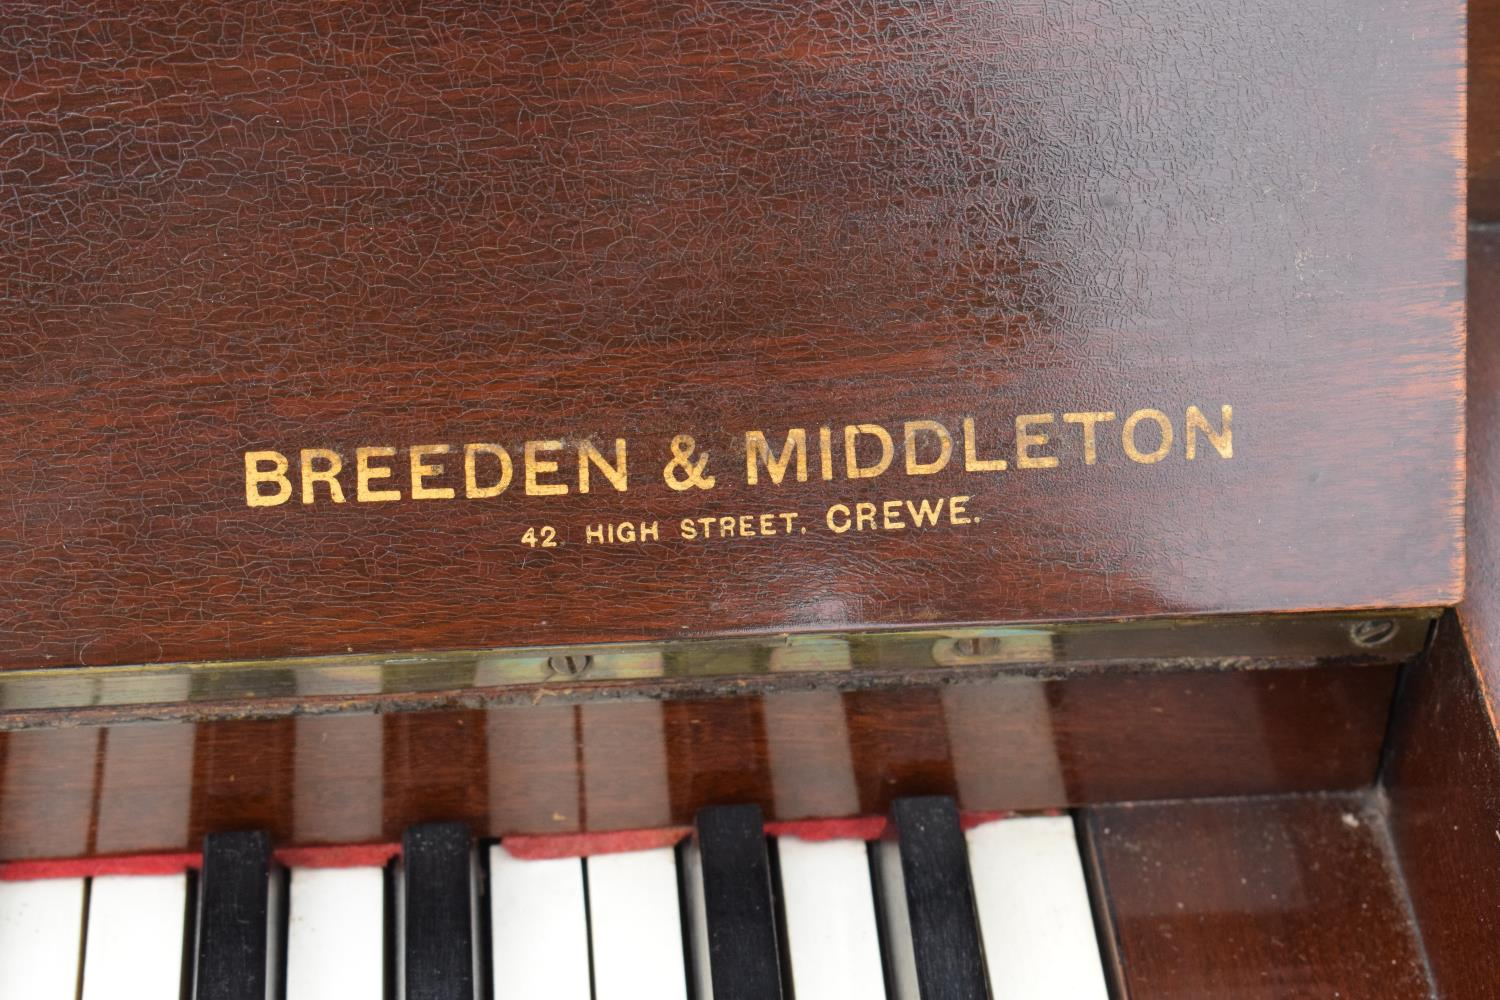 A Breedon and Middleton 'Mydleton' of 42 High Street Crewe upright wooden piano with 85 keys - Image 3 of 11